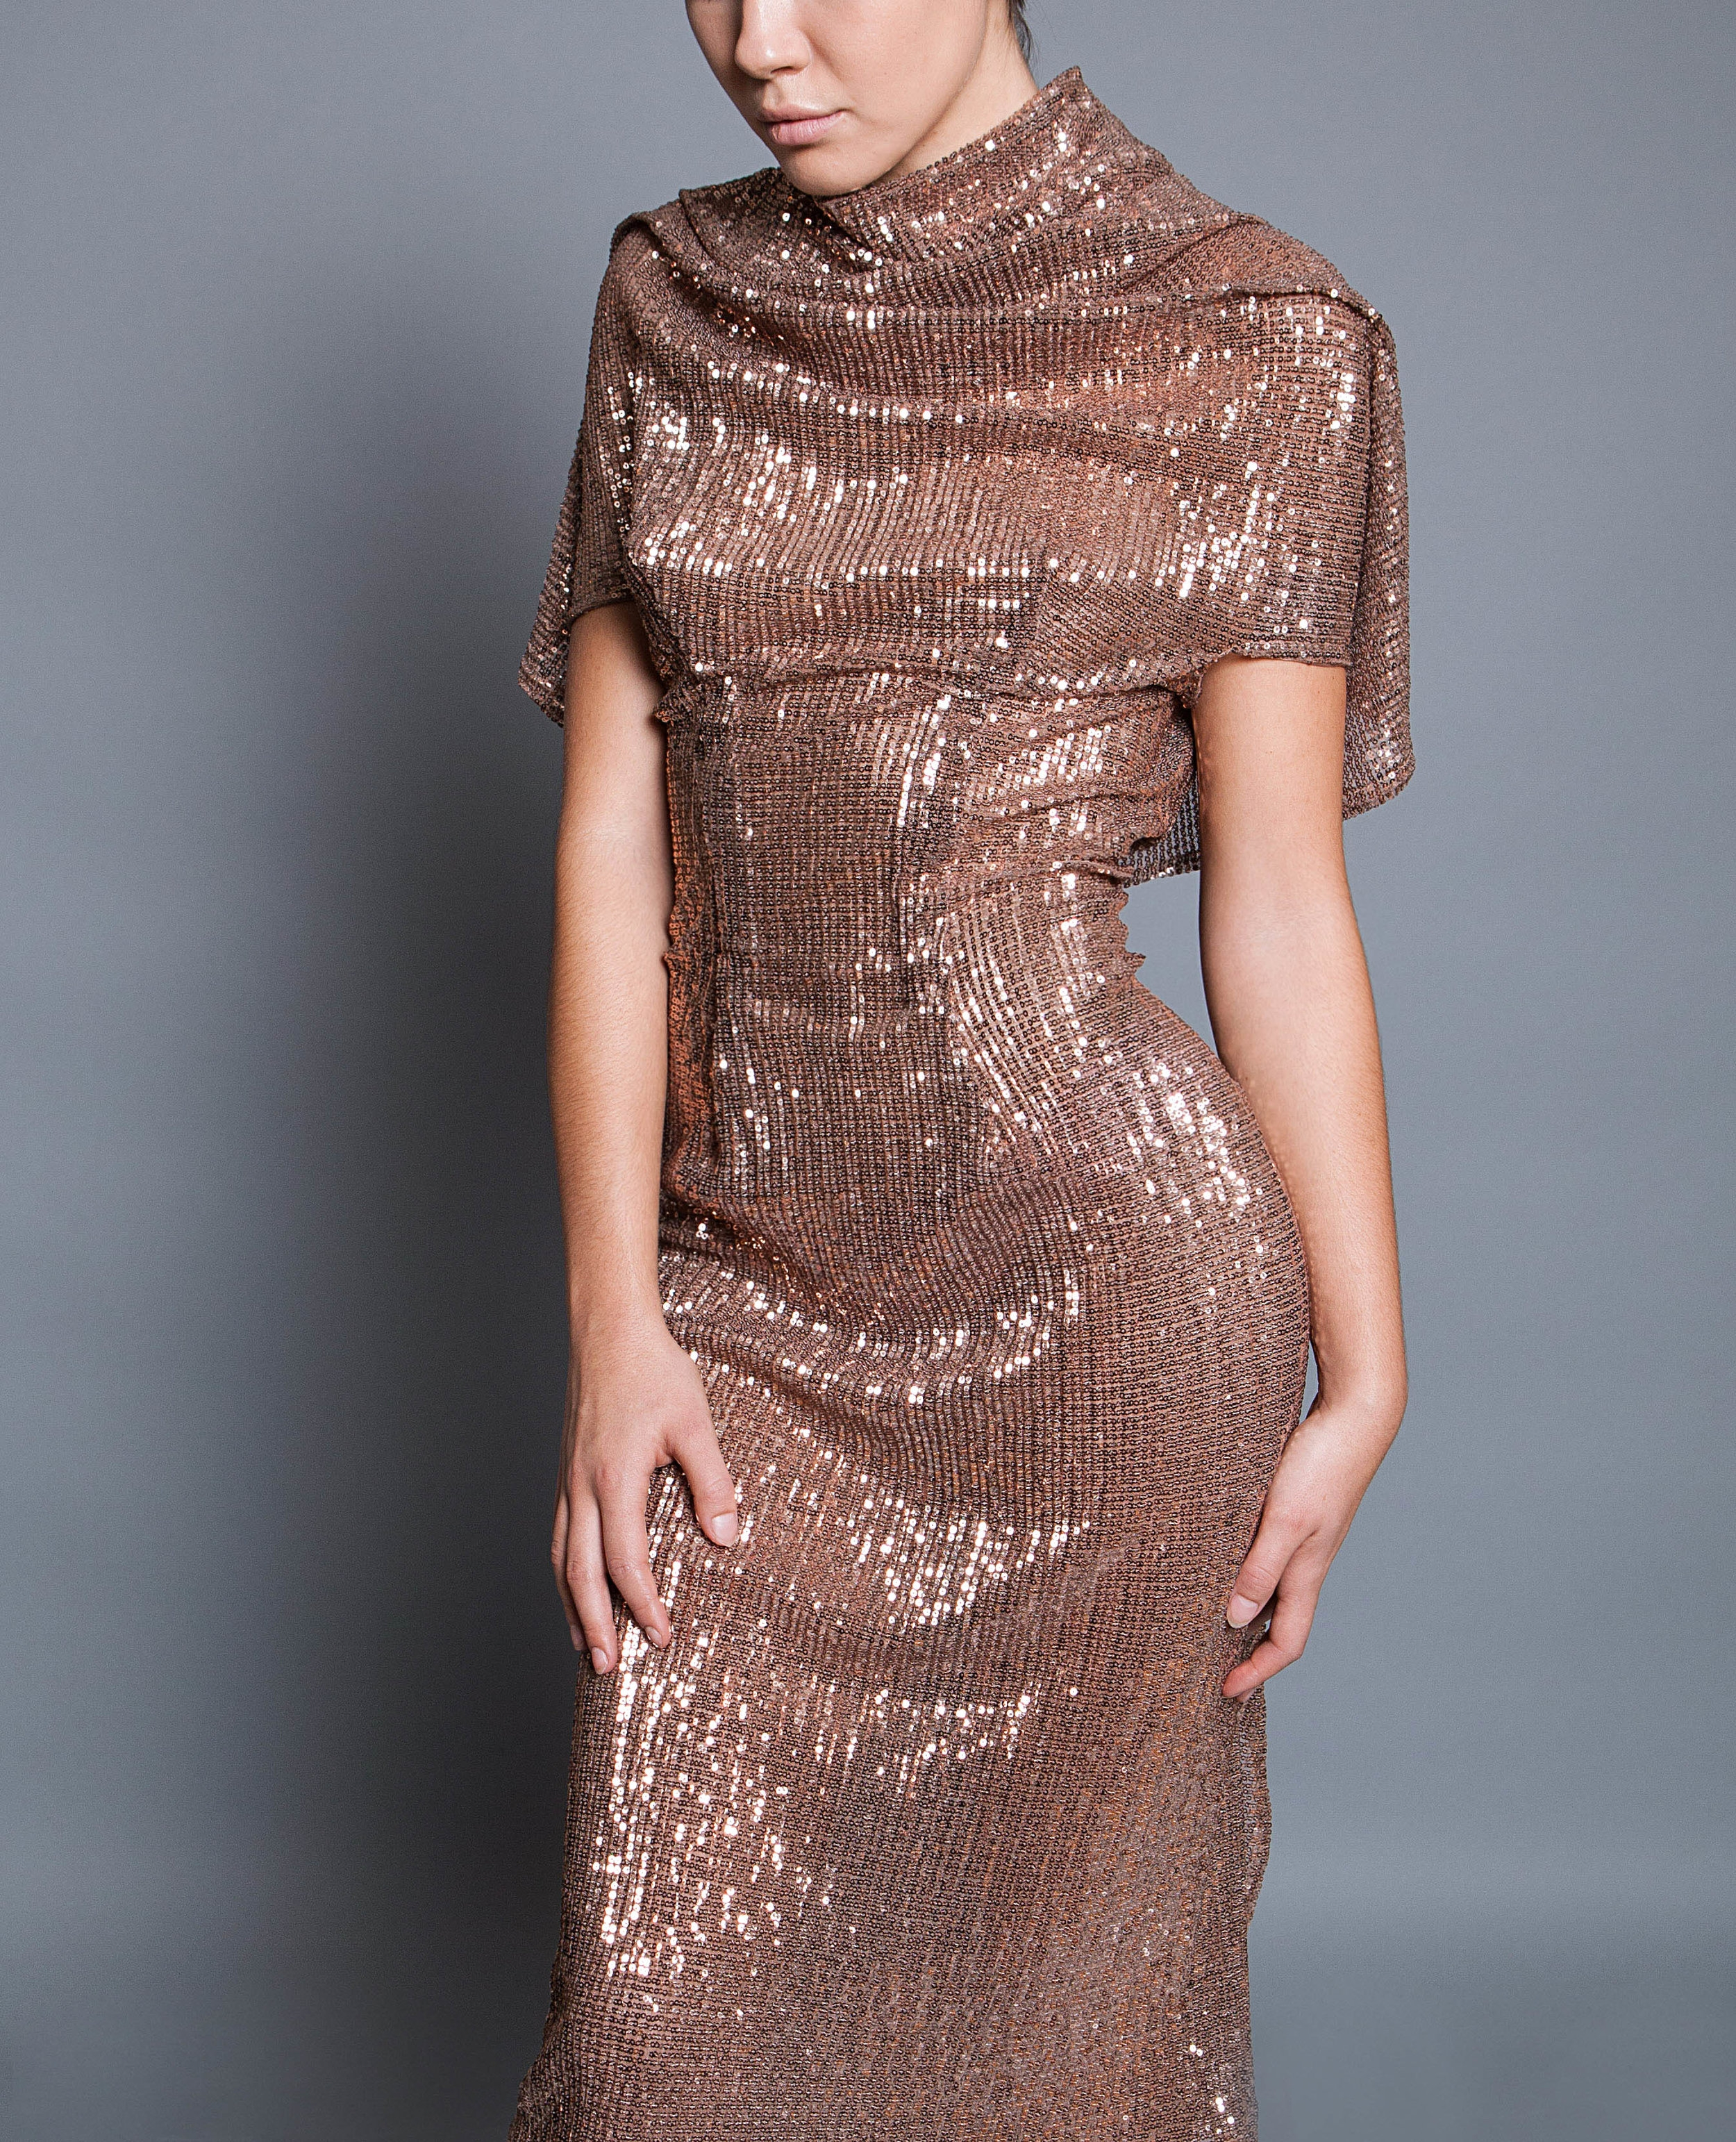 Golden Hour - For a perfect night out...